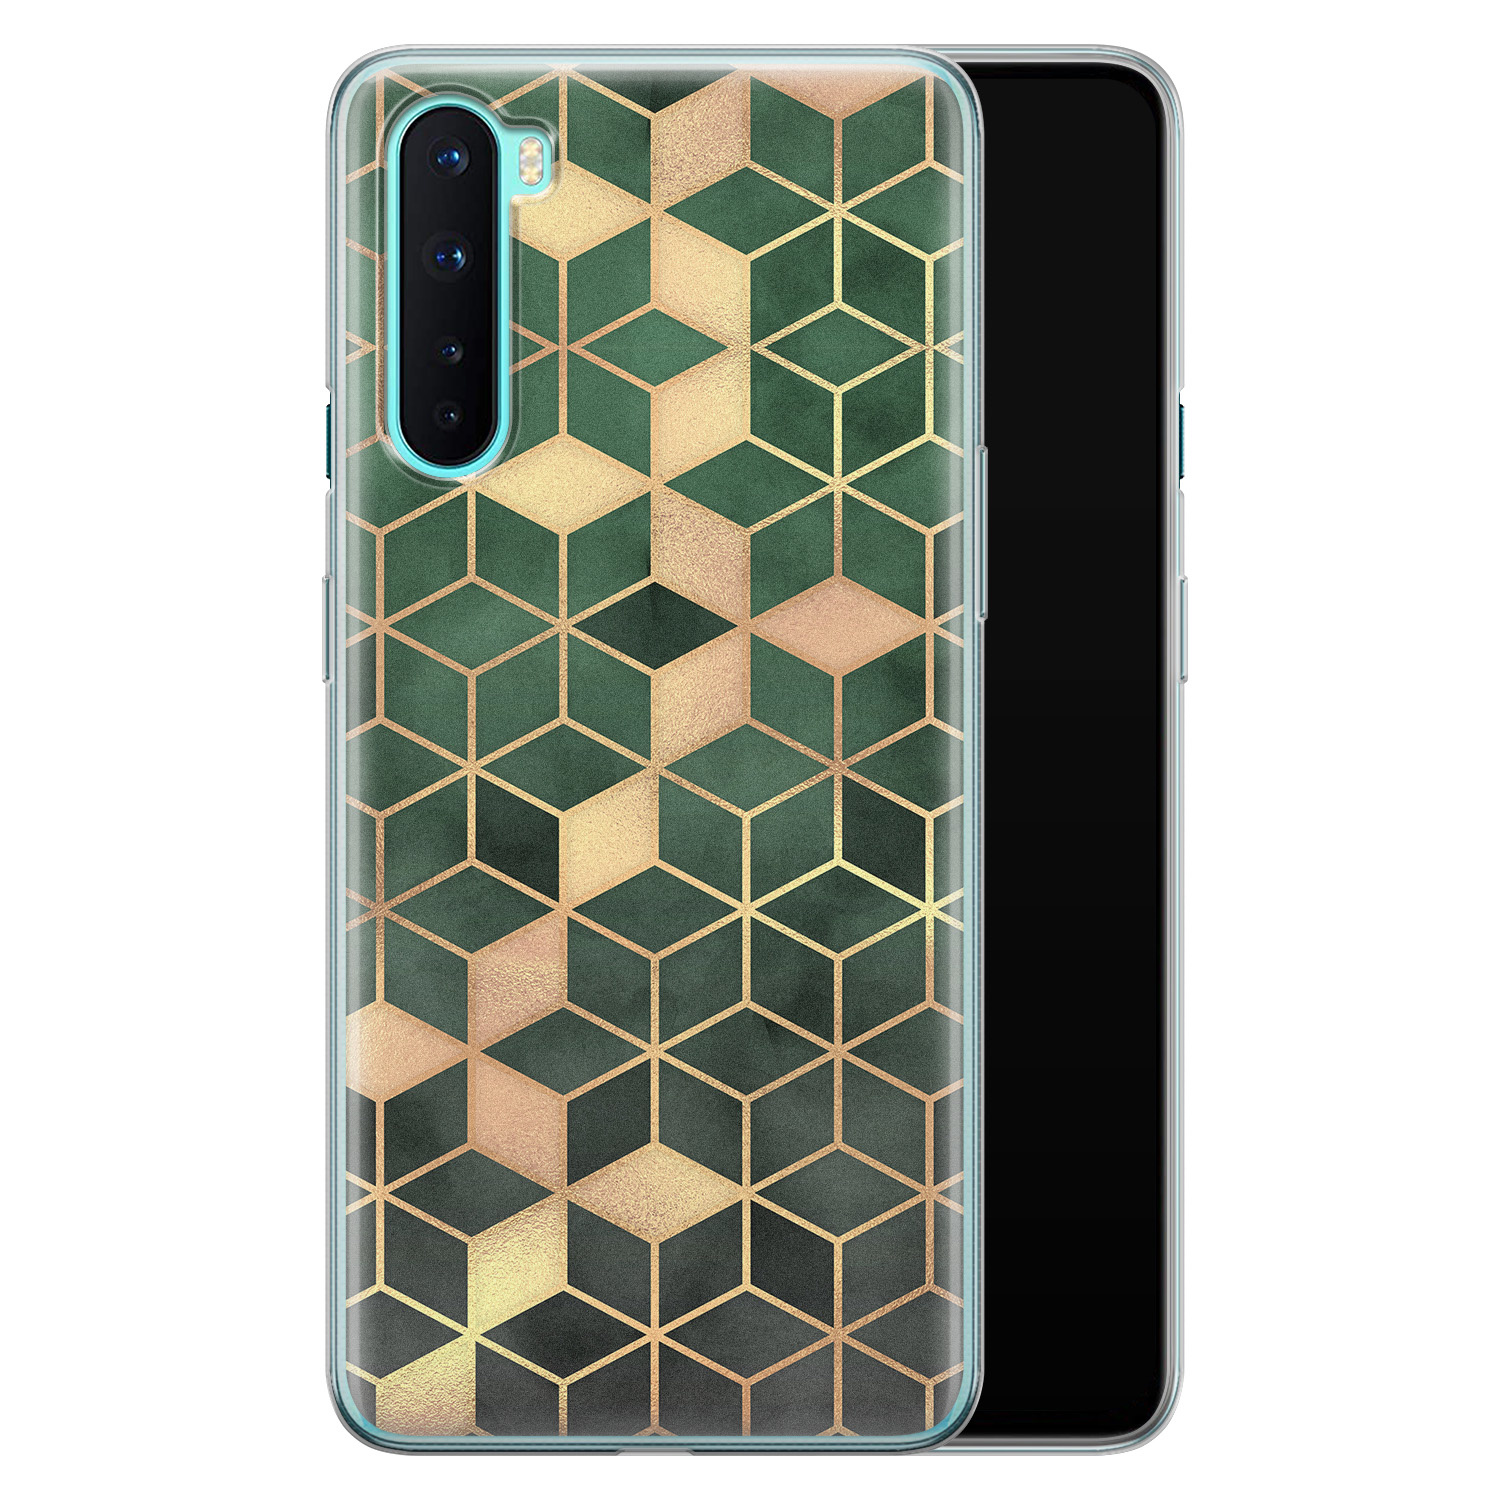 OnePlus Nord siliconen hoesje - Green cubes